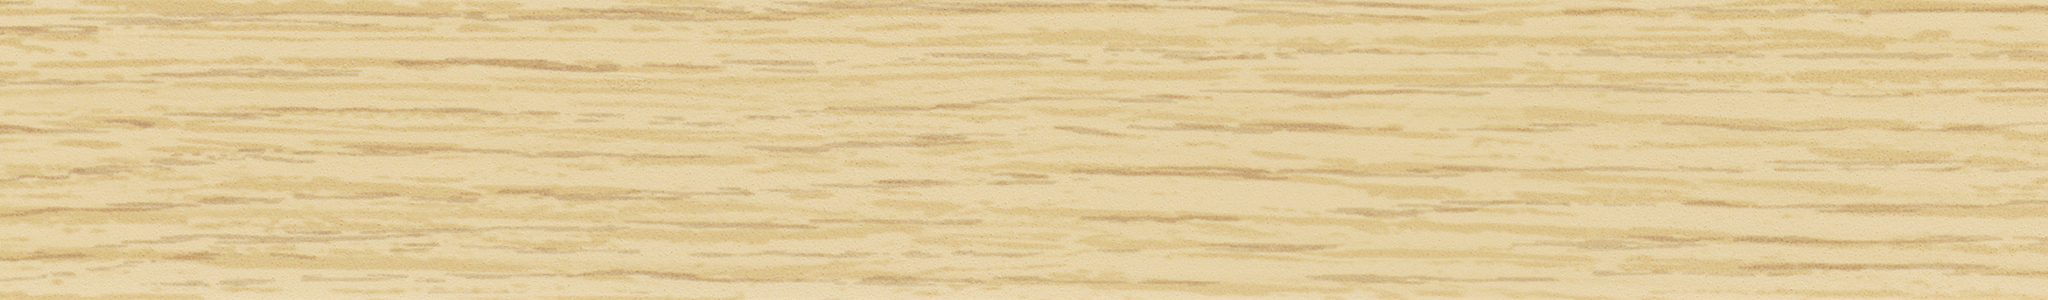 HD 24018 ABS Edge Oak Smooth